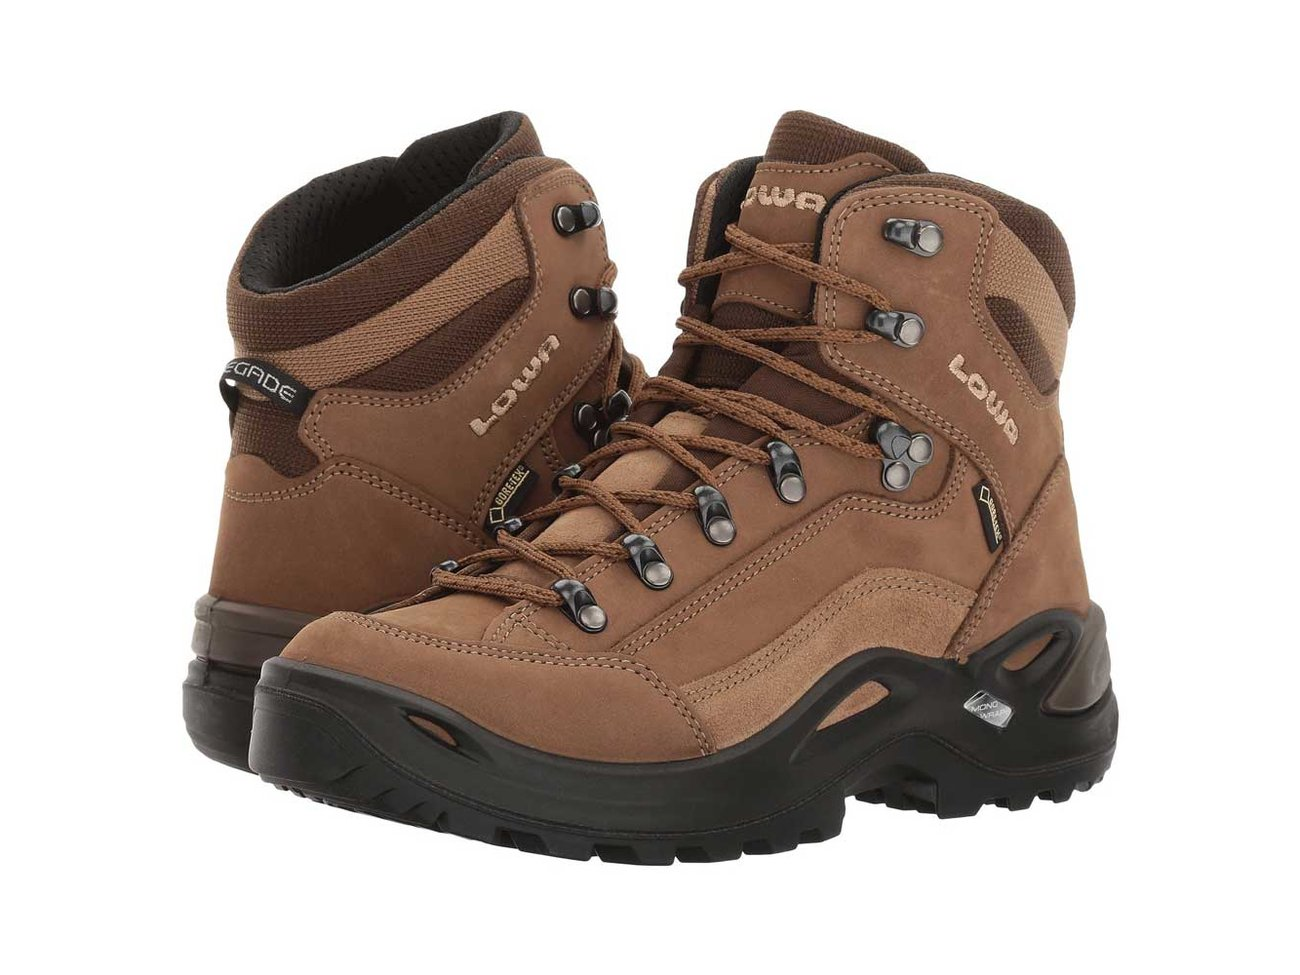 a3039ef66d3 Top 10 Best Hiking Boots In 2019 Reviews